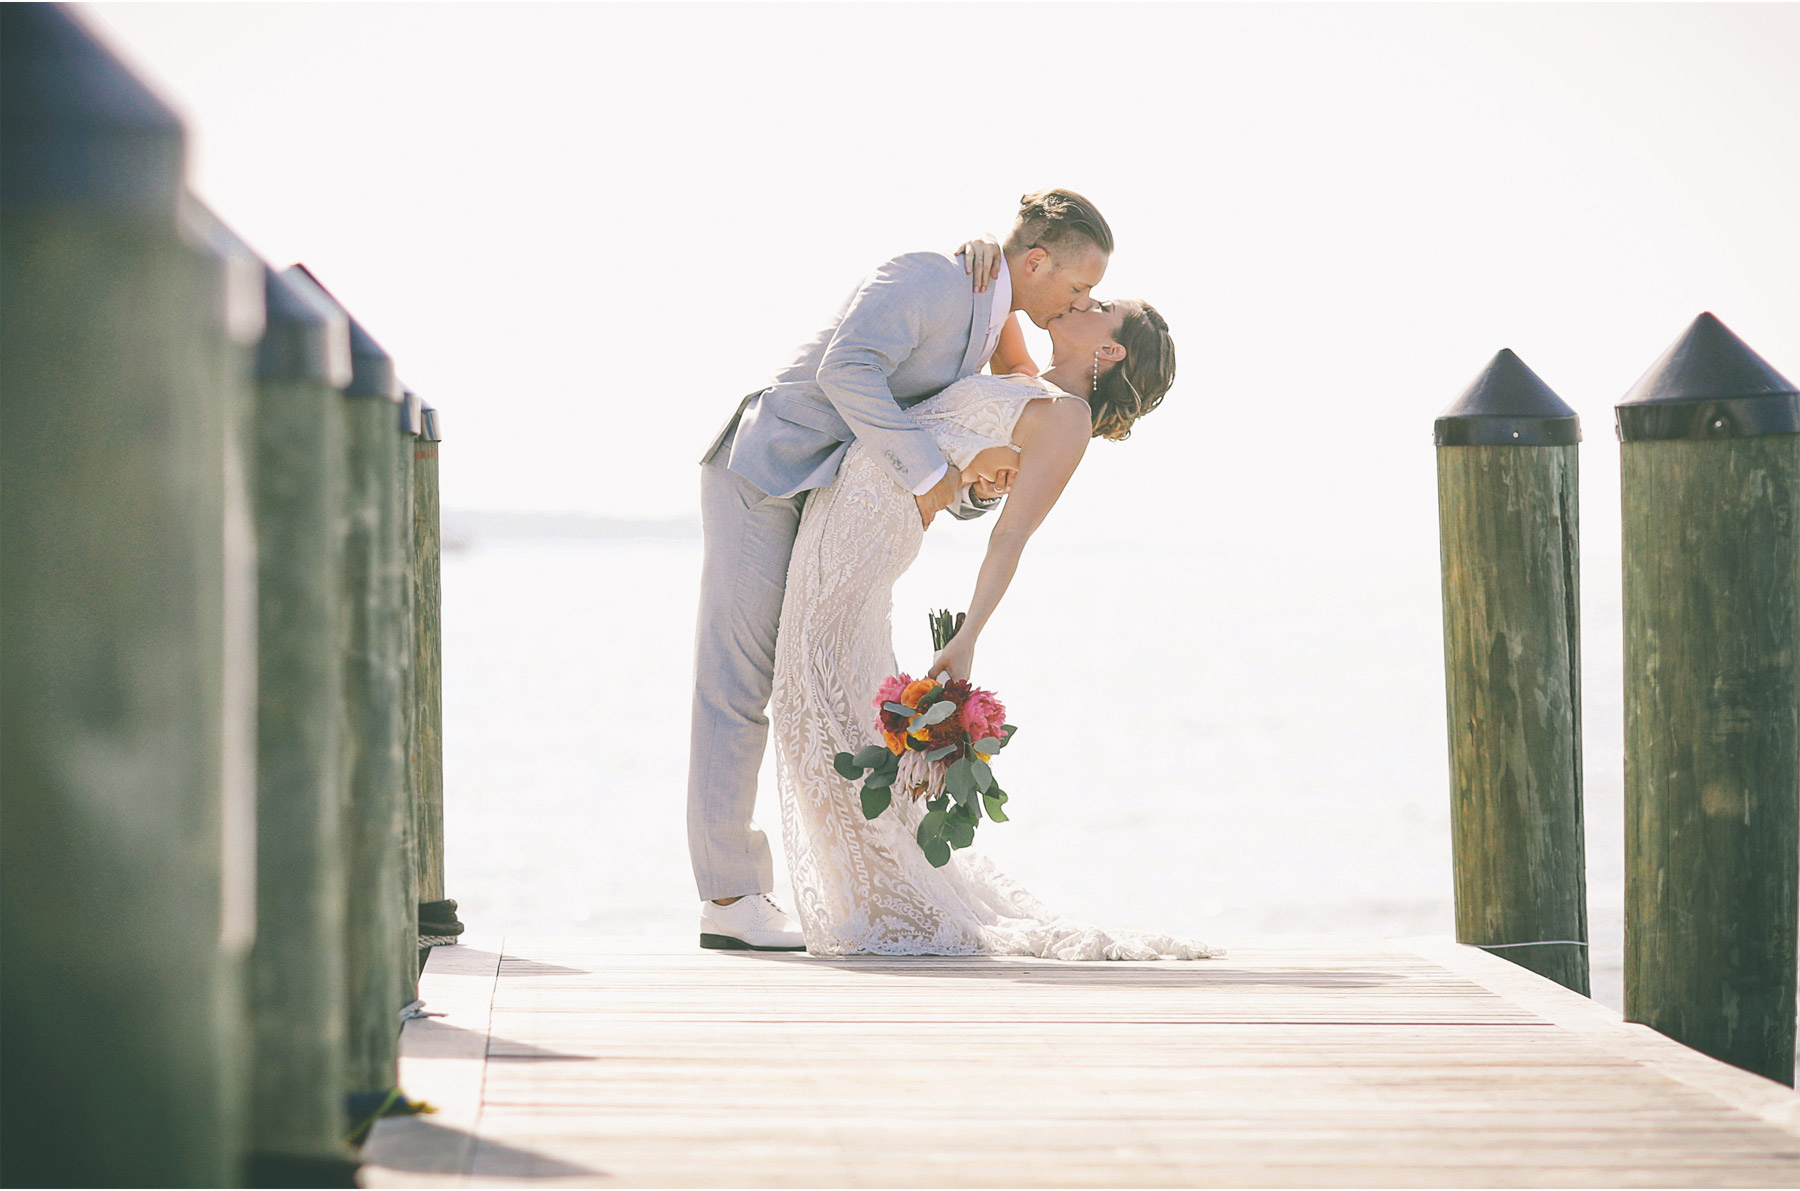 08-Key-Largo-Florida-Keys-Wedding-Photographer-by-Andrew-Vick-Photography-Playa-Largo-Resort-and-Spa-Hotel-Destination-Winter-First-Meeting-Look-Bride-Groom-Docks-Kiss-Dip-Flowers-Ocean-Water-Vintage-Carrie-and-Brian.jpg